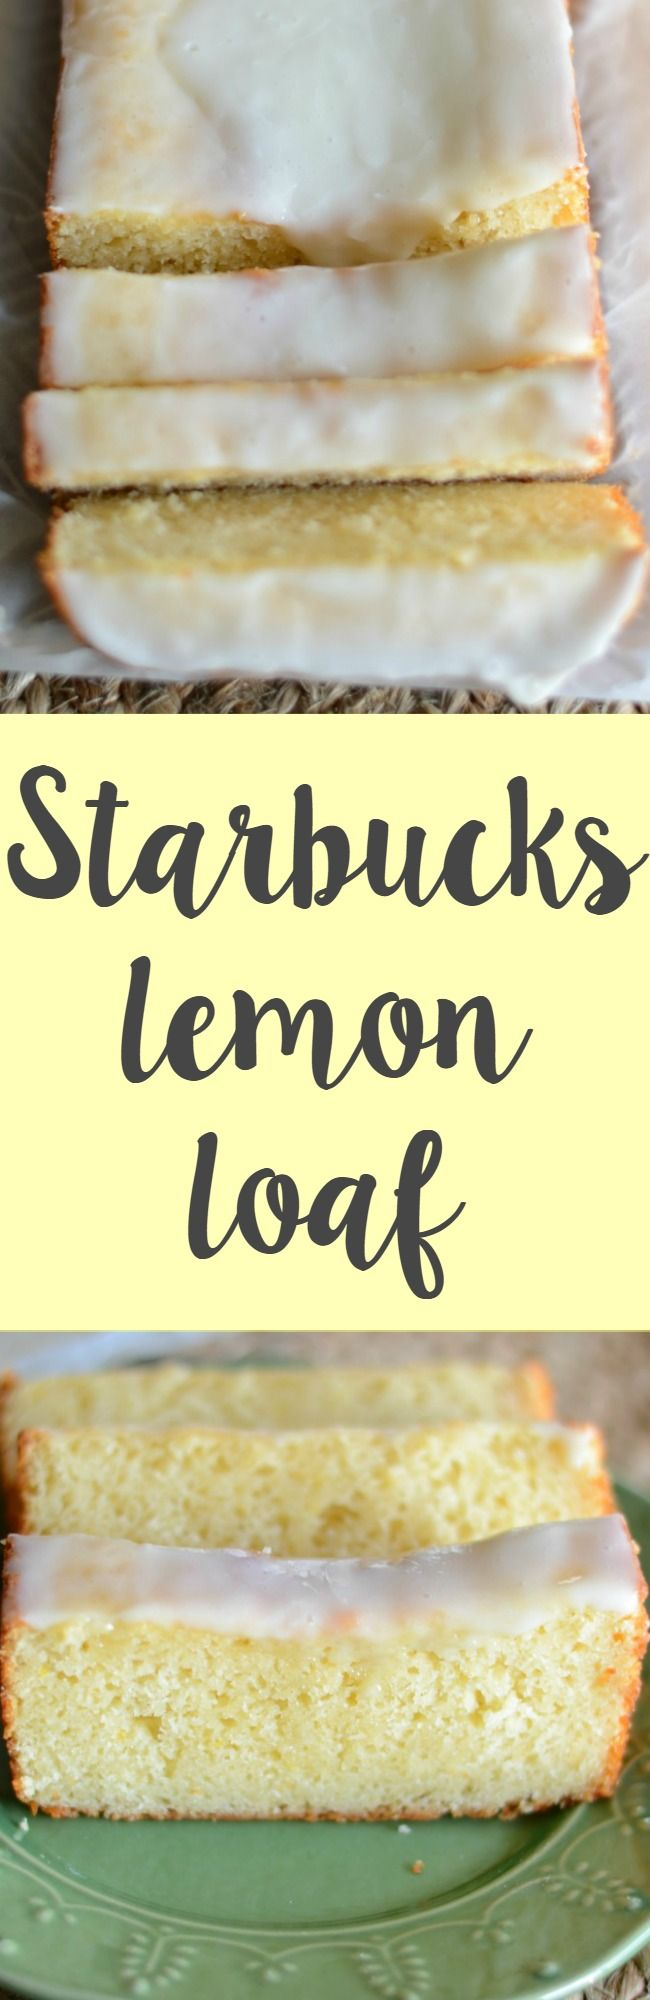 Make your own Starbucks lemon loaf at home!  Super easy recipe that you can enjoy any time!